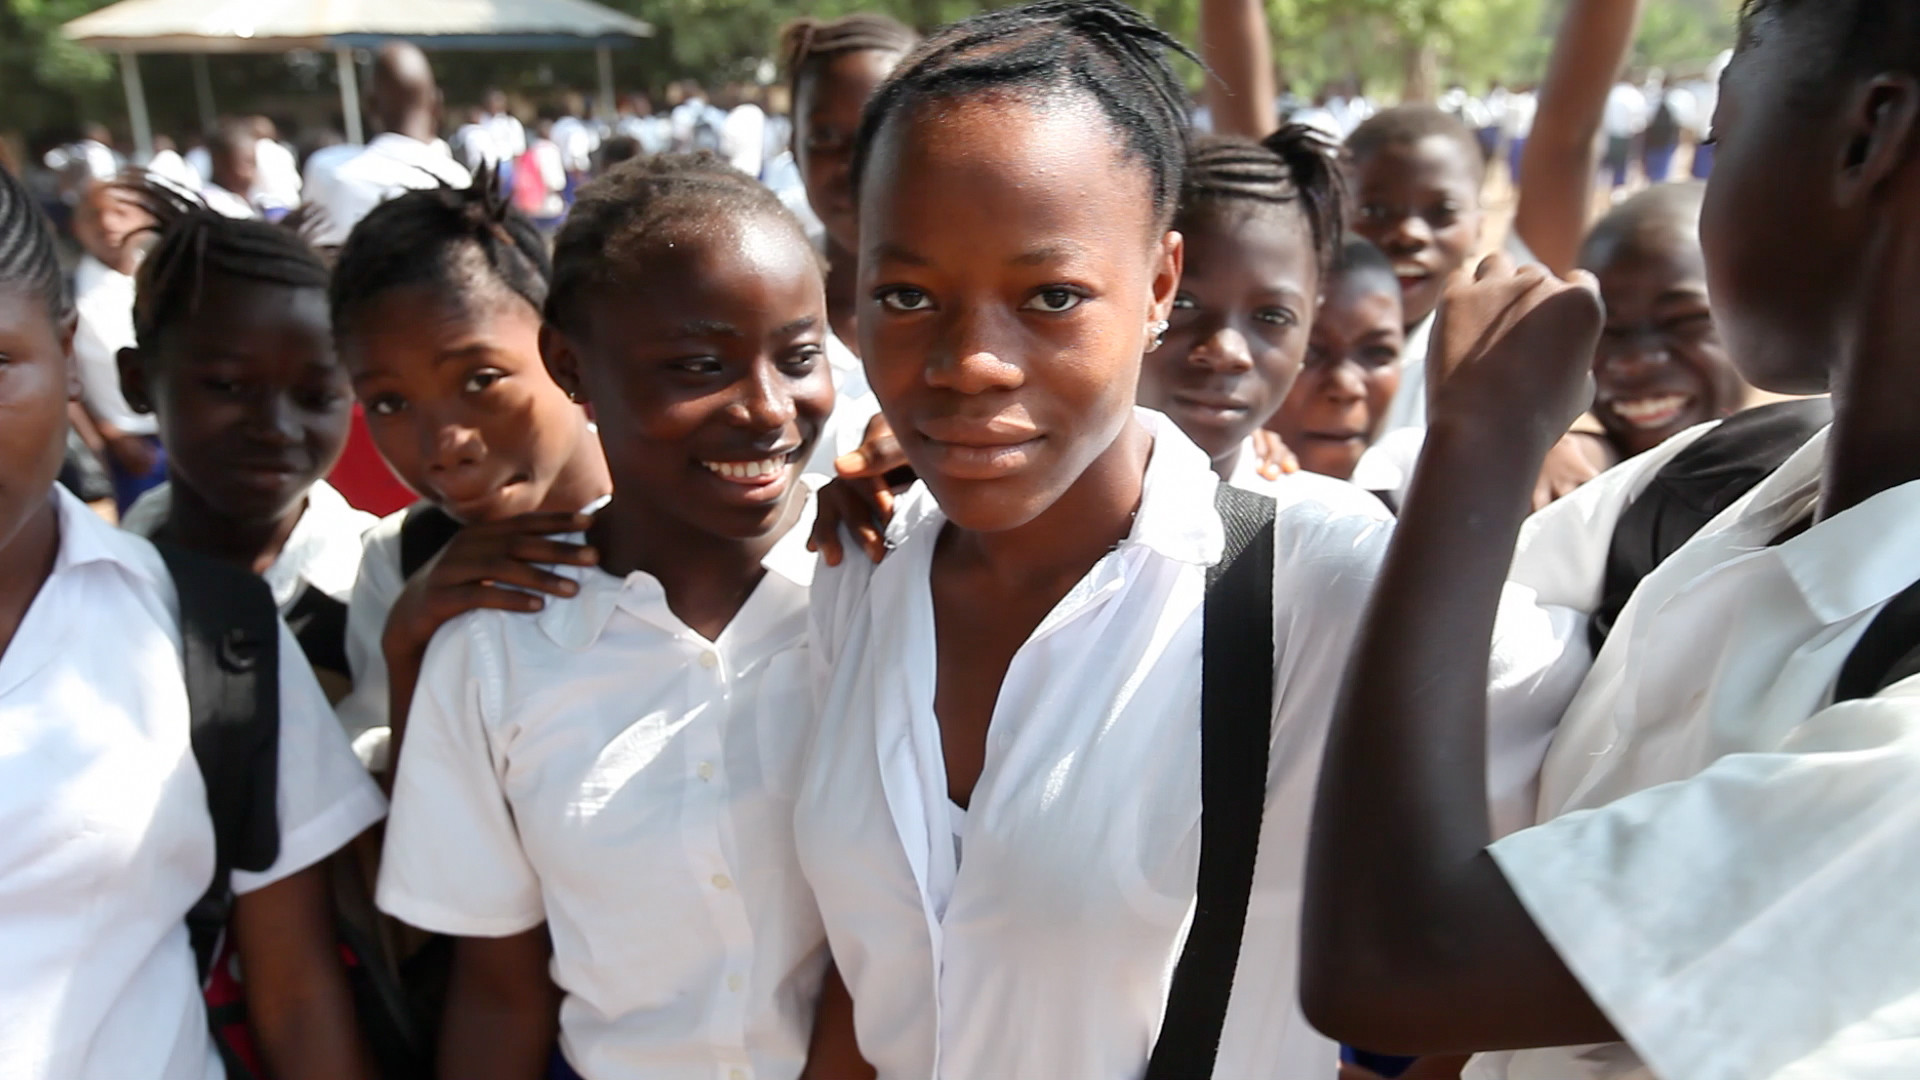 UK Government's Cuts to Aid Budget Put Girls' Education at Risk